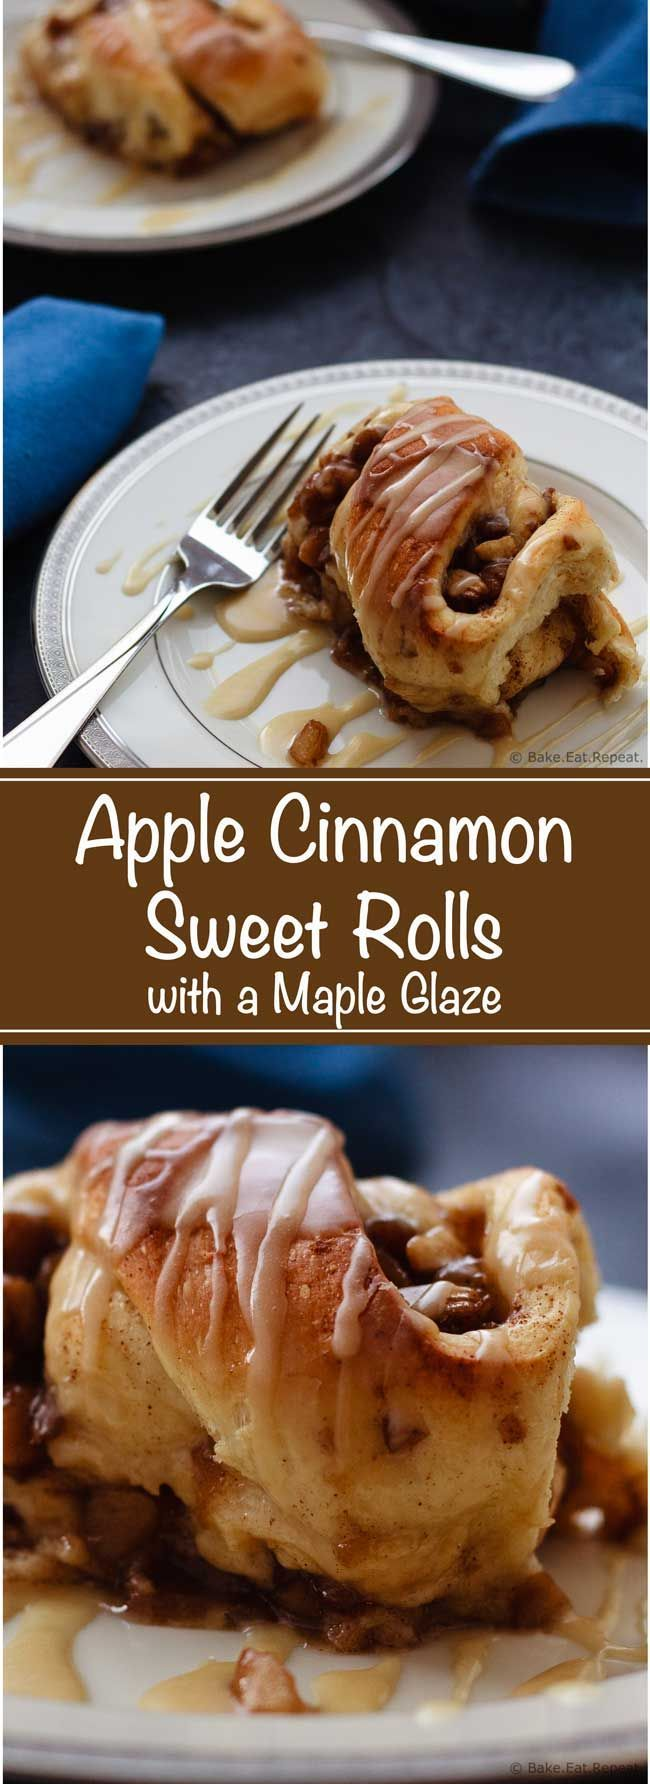 95 best Easy Cinnamon Roll Recipes images on Pinterest ...